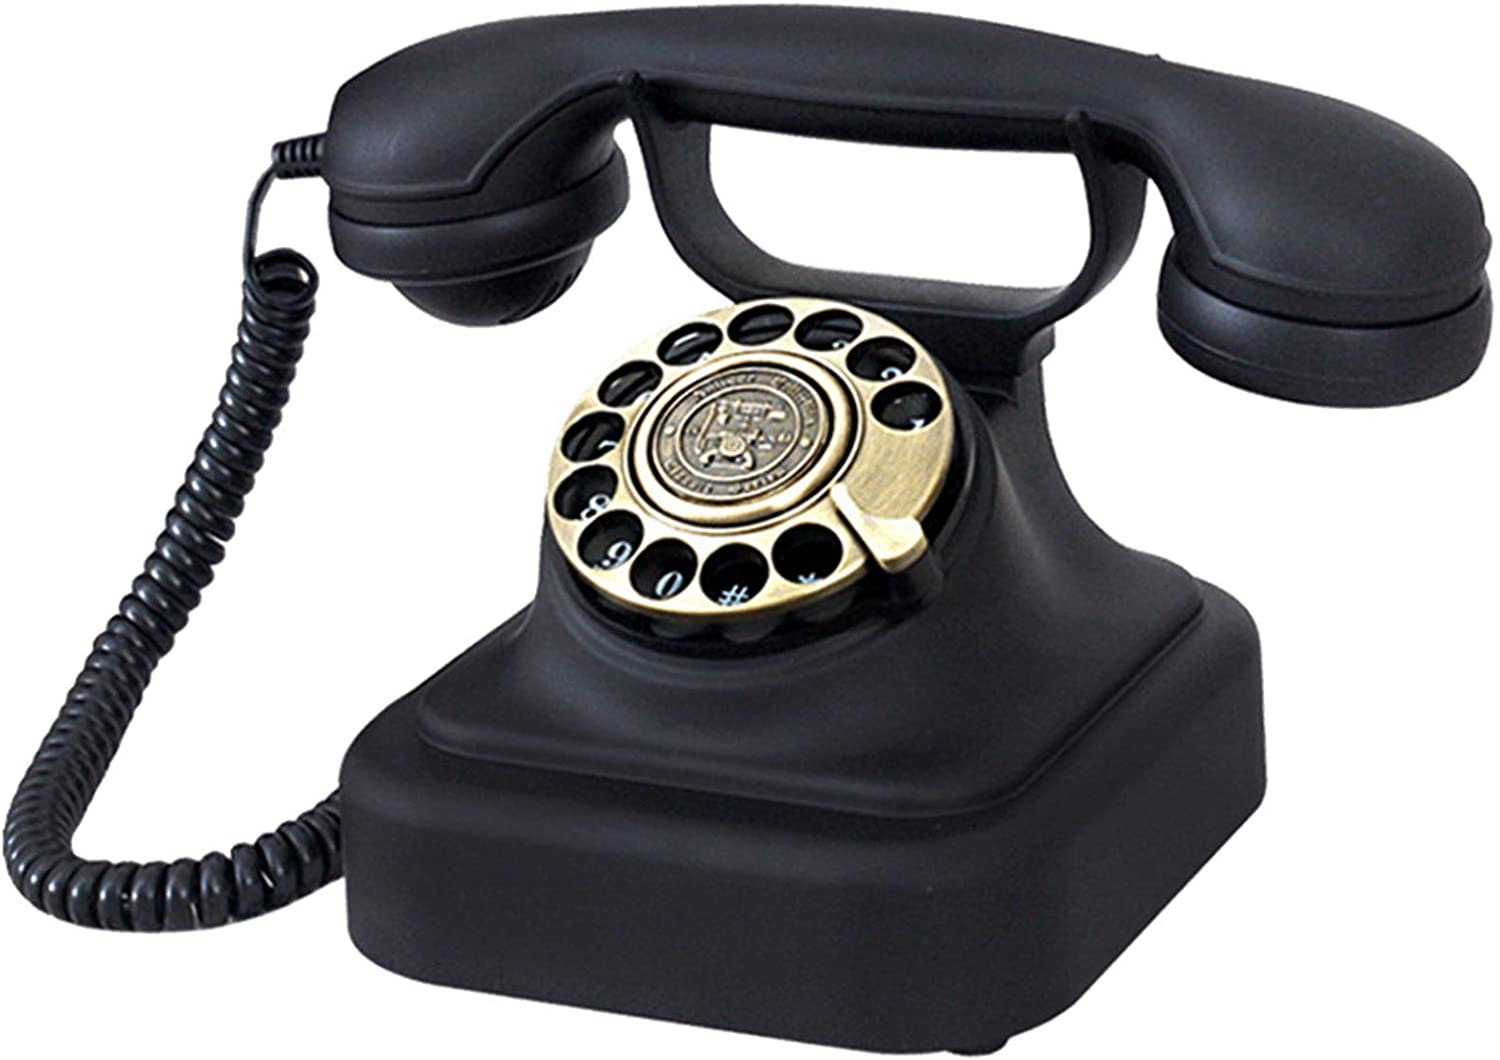 XJJUN New products, world's highest quality popular! New popularity Old Telephone An Retro Dial